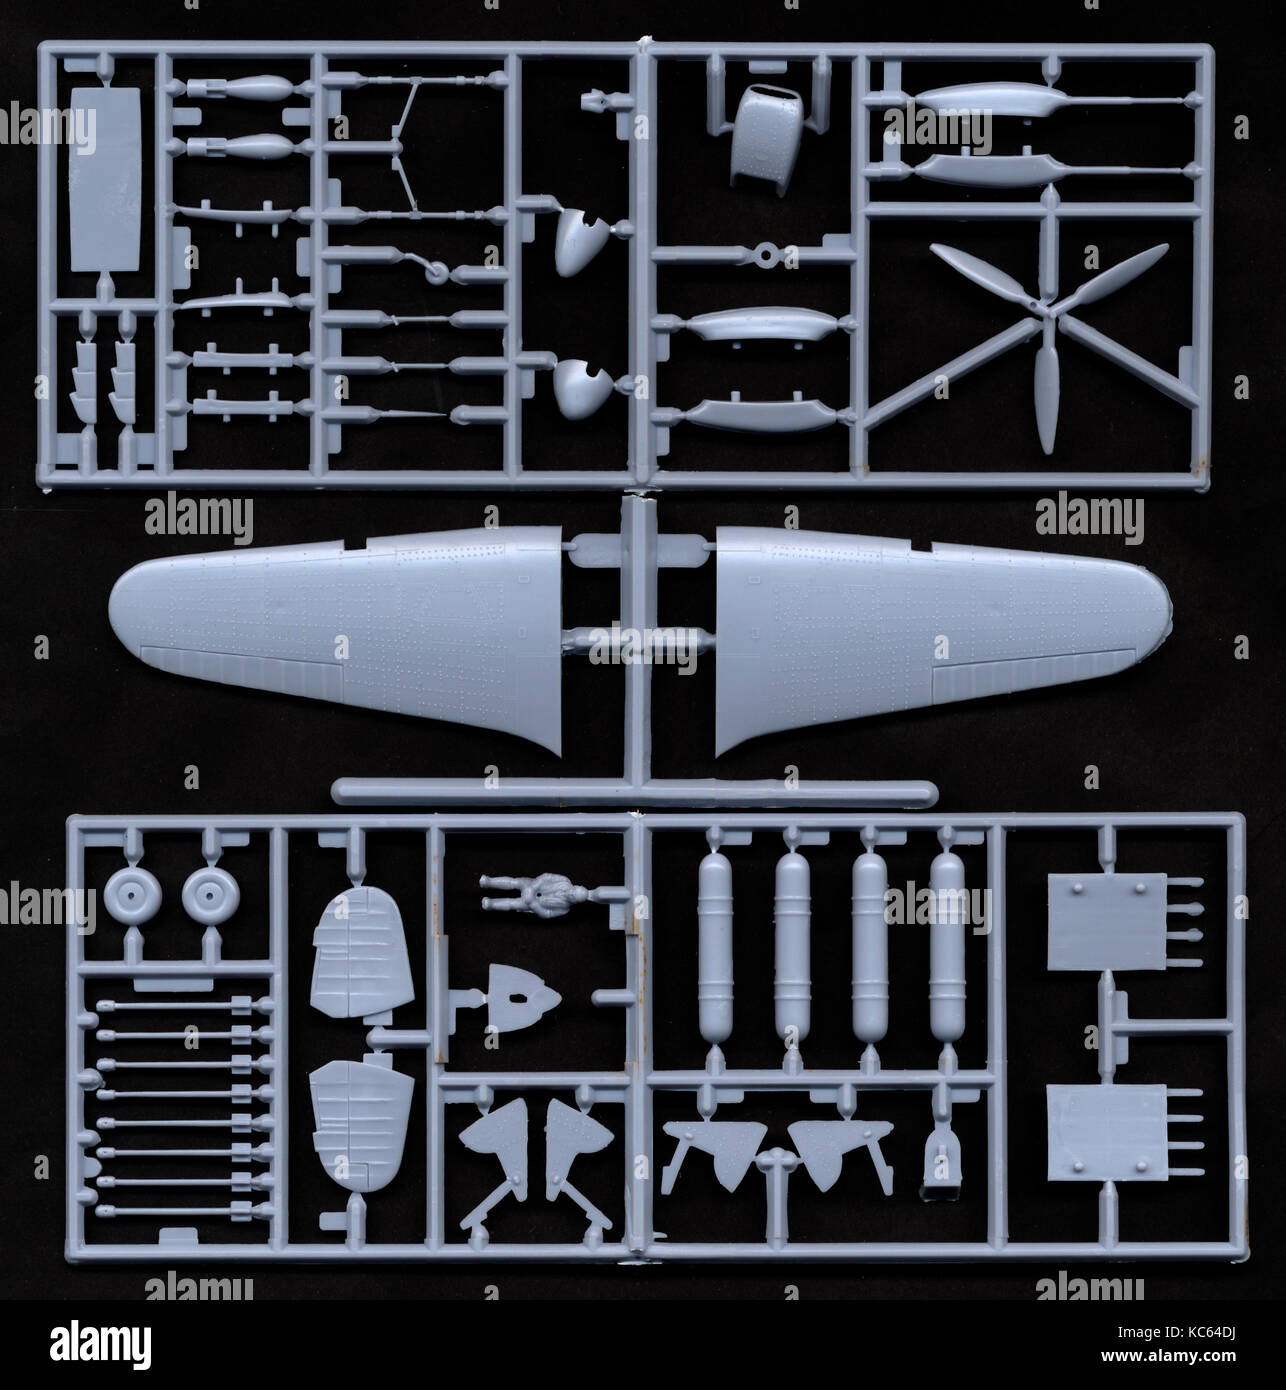 Plastic Model Aircraft Kit for Assembly - Stock Image